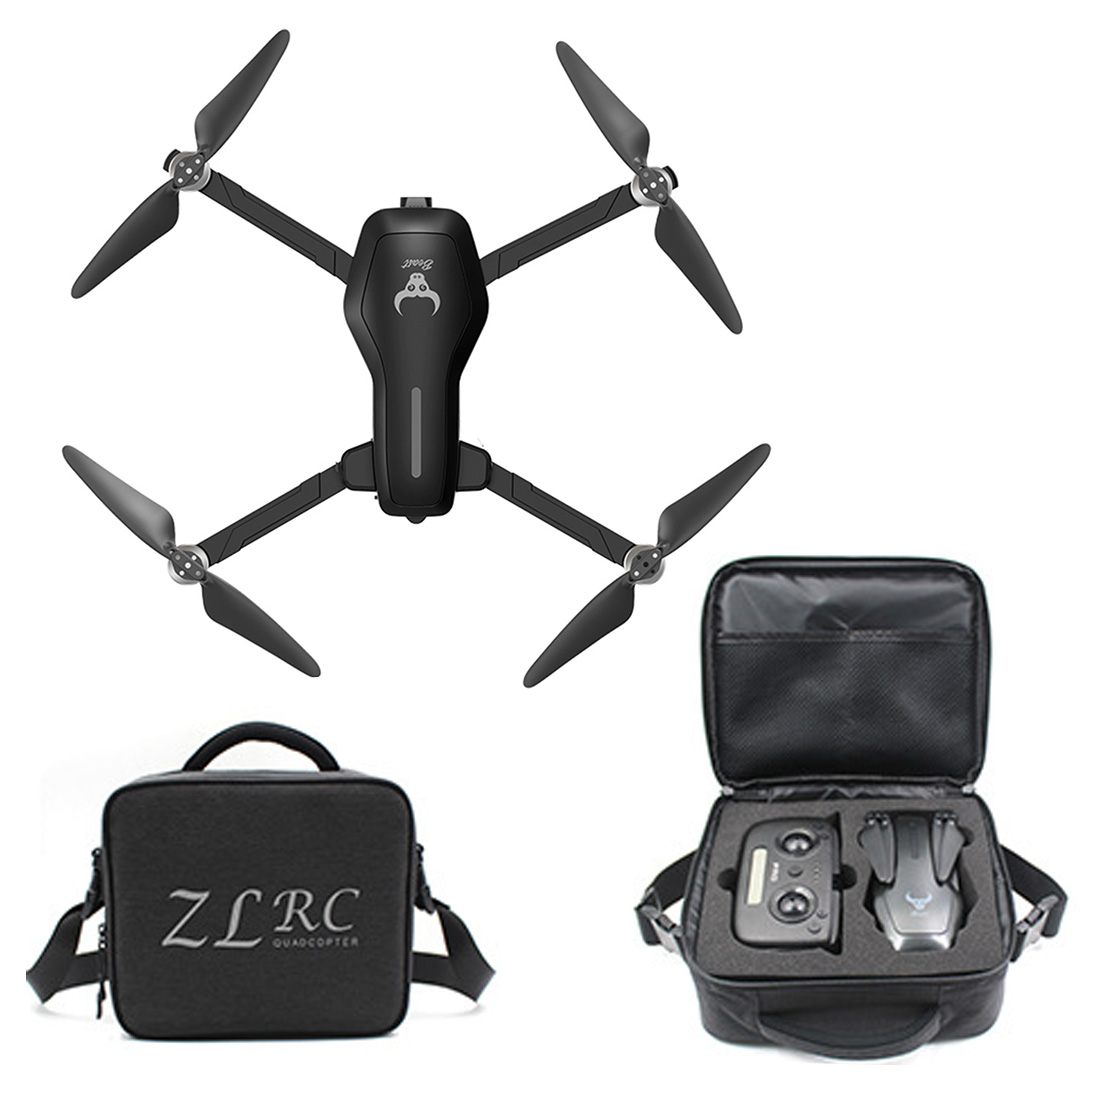 New SG906 PRO GPS Drone 2-axis Anti-shake Self-Stabilize Stable Gimbal 25 Mins Flight WiFi FPV 4K Camera Brushless RC Quadcopter